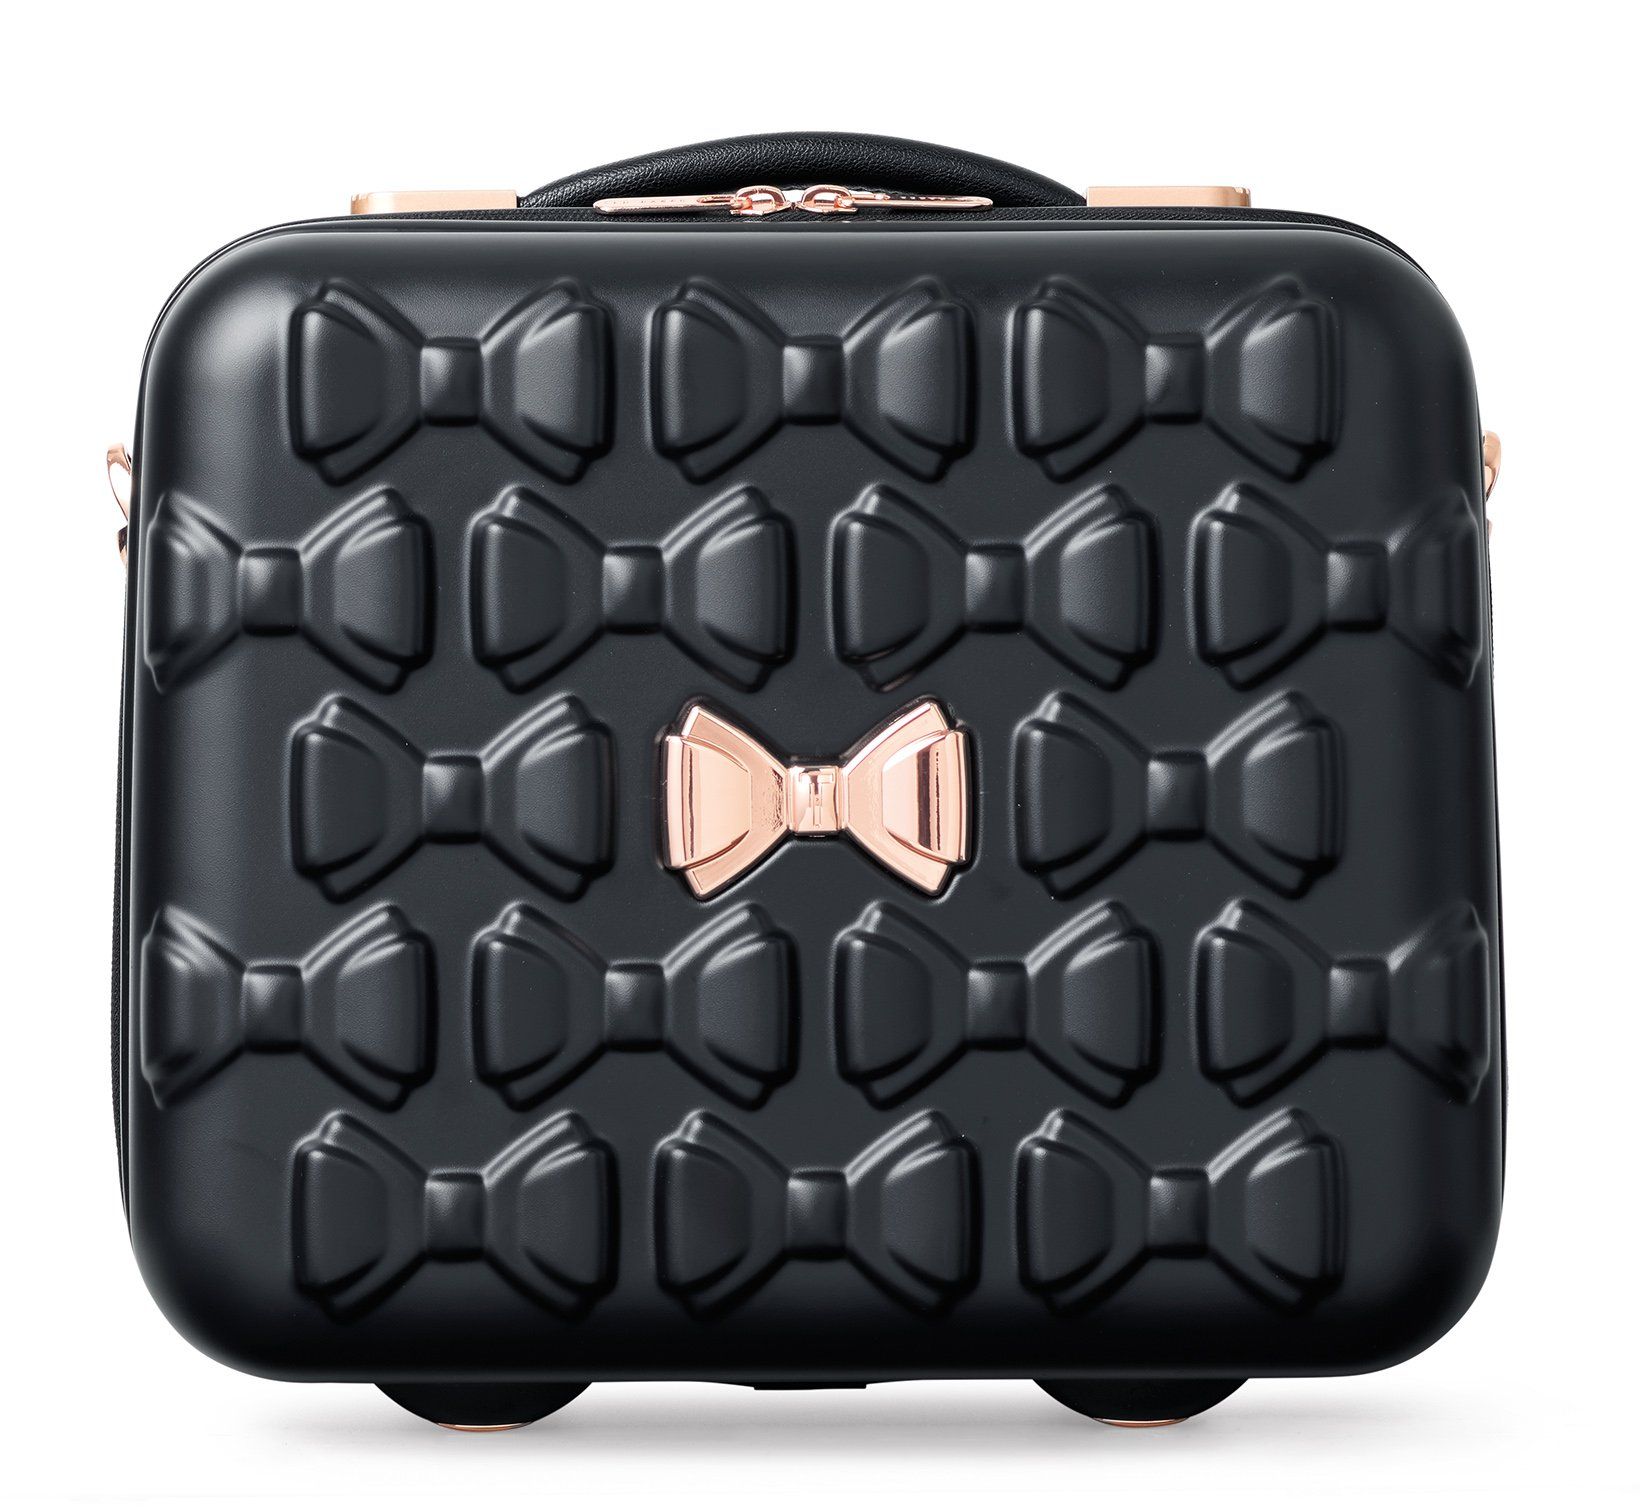 Ted Baker Women's Beau Collection Vanity Case (Black) by Ted Baker